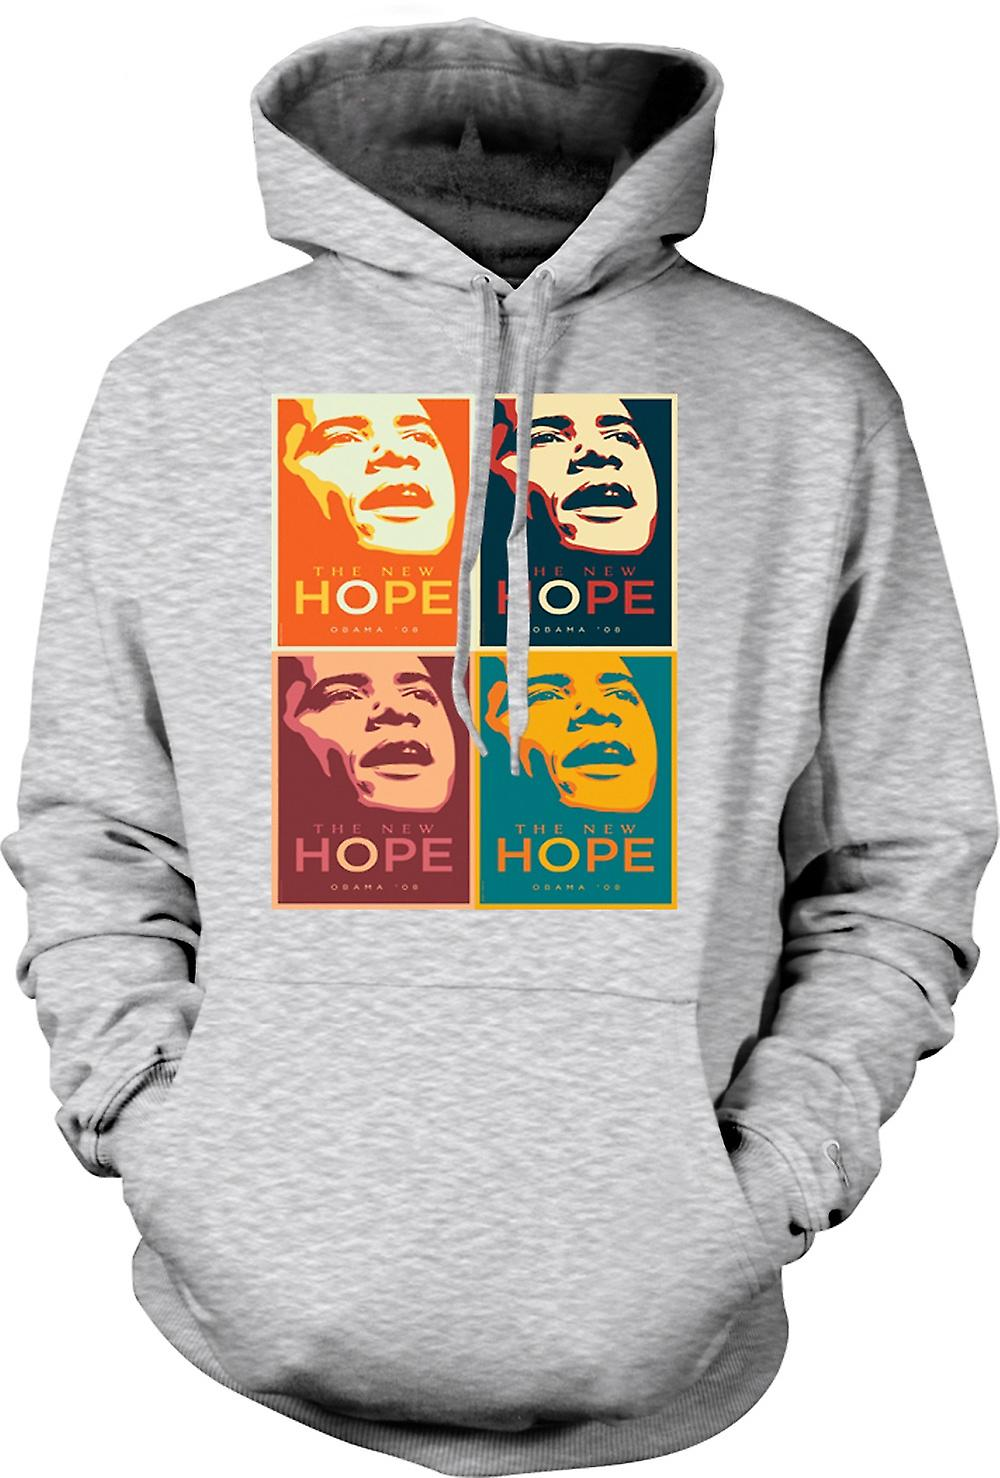 Mens Hoodie - Obama 08 New Hope - Warhol